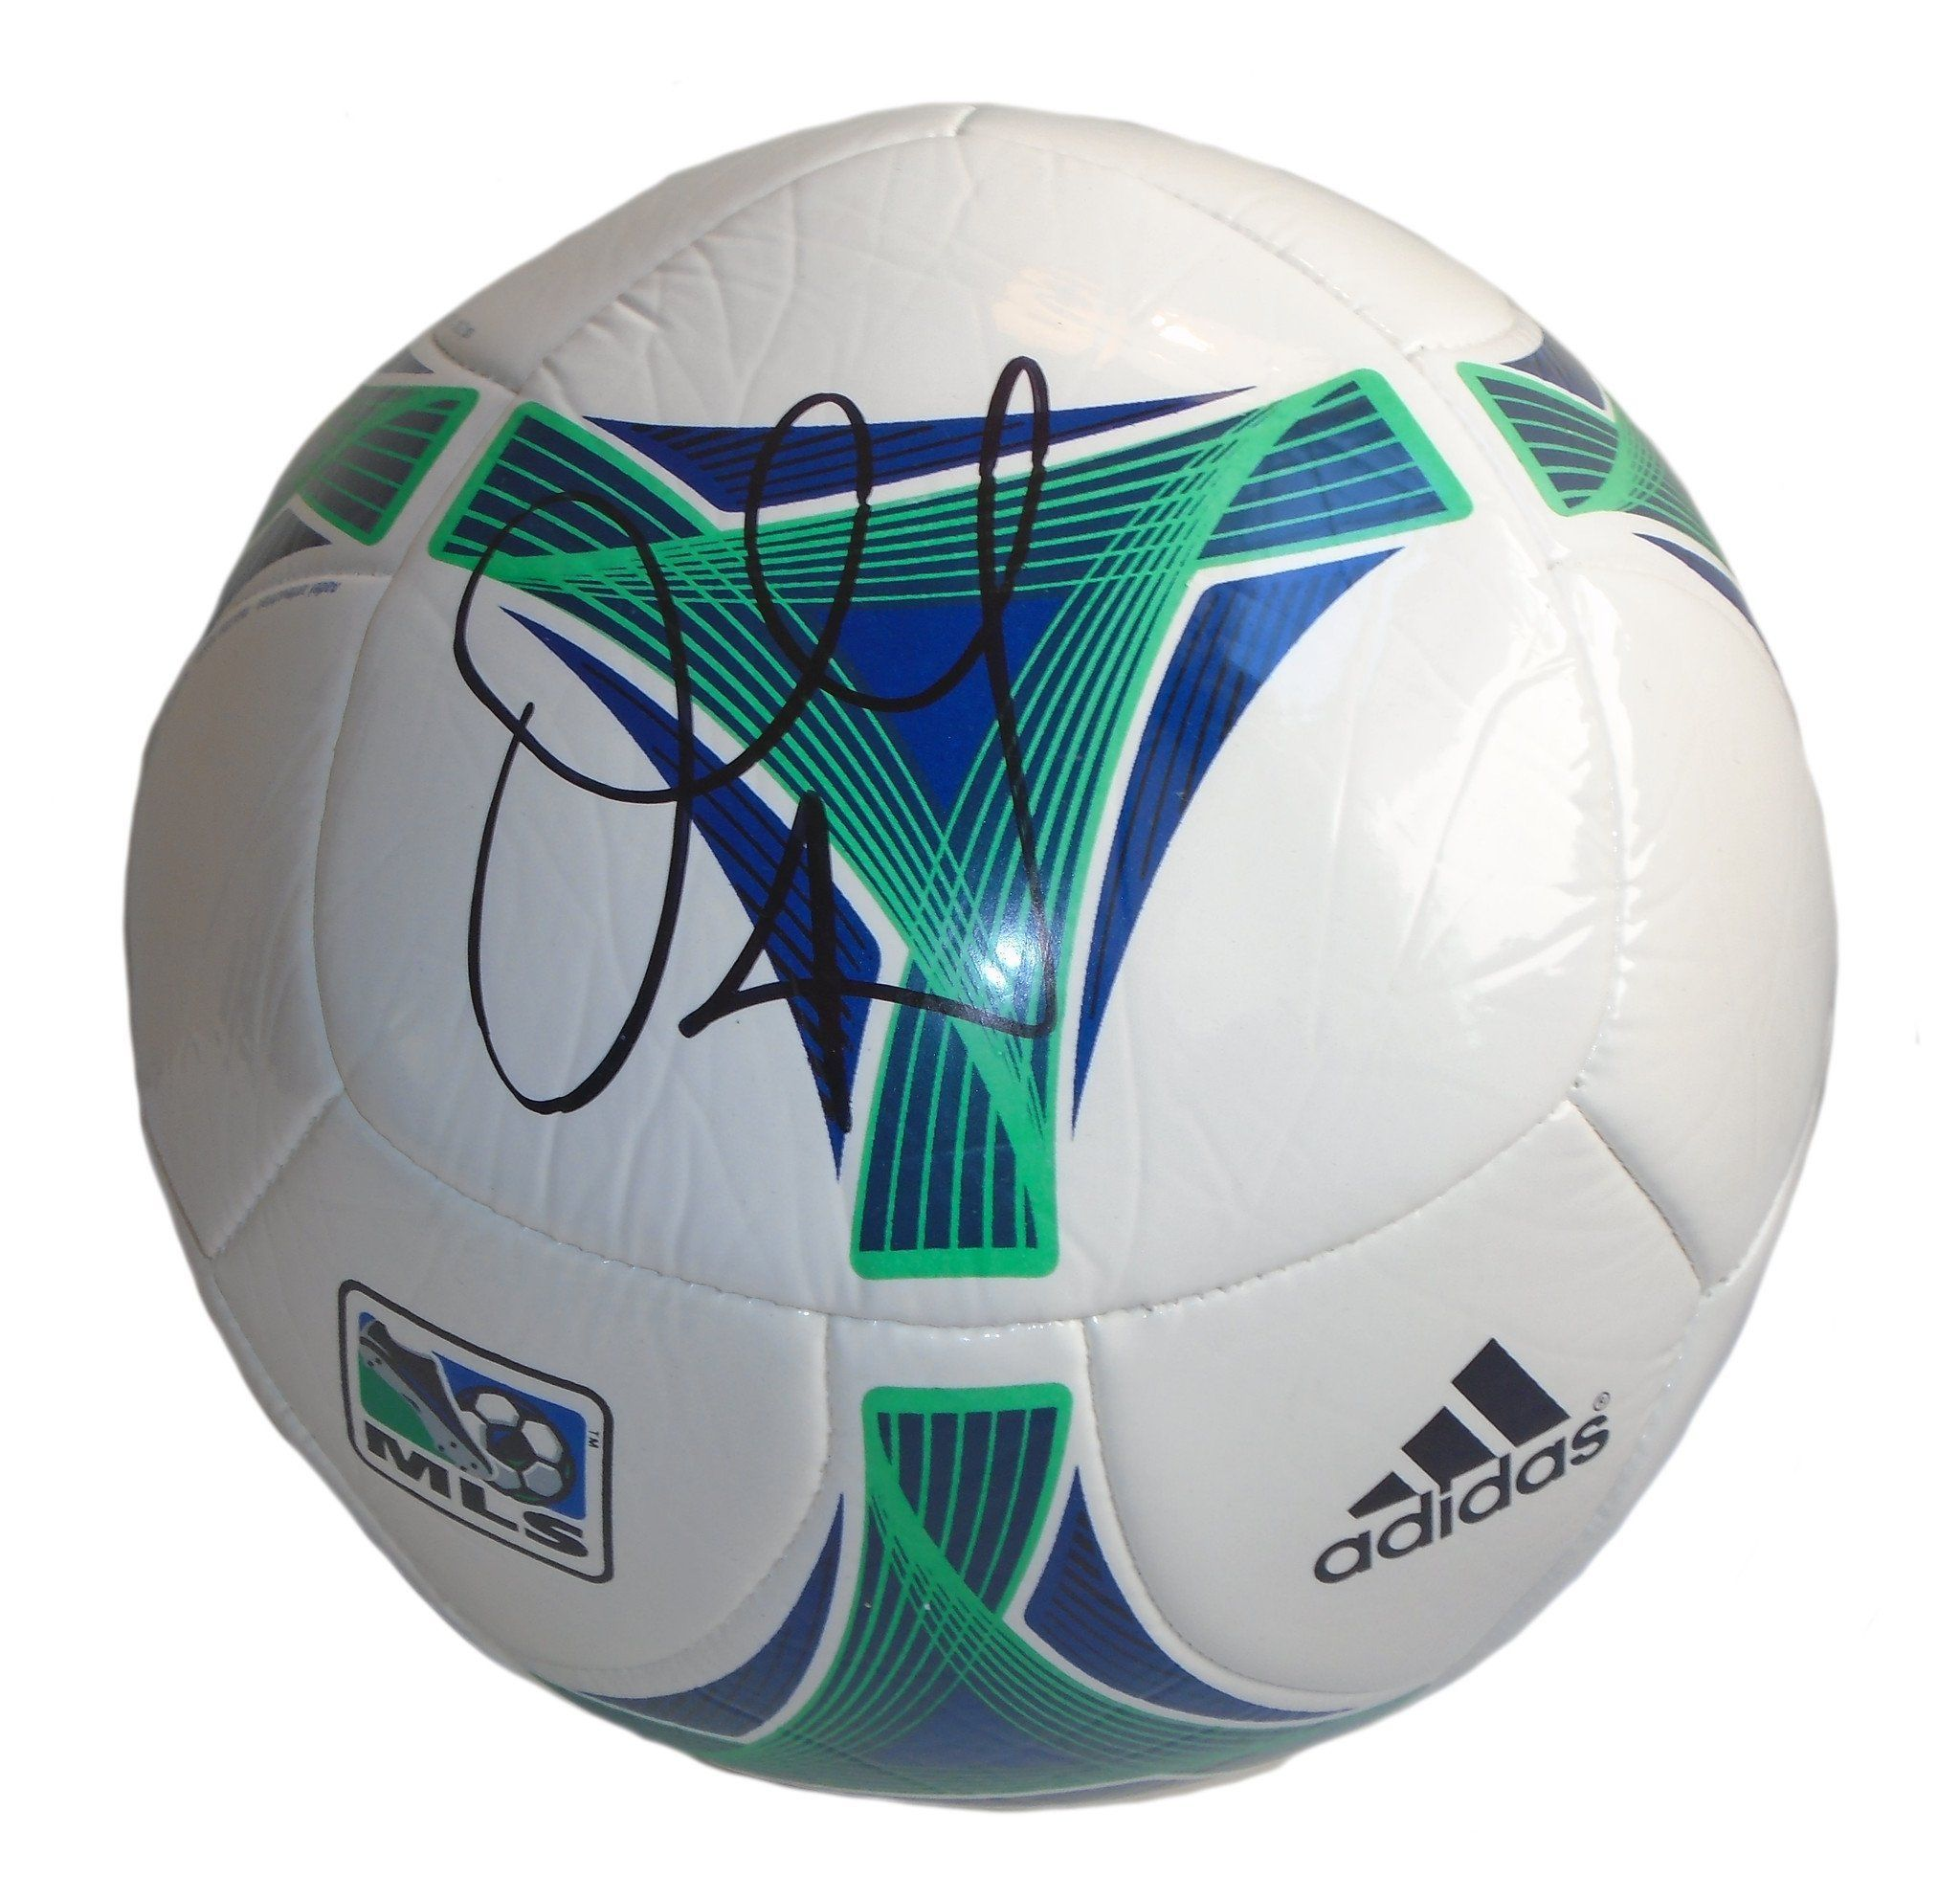 24a804e9bad Omar Gonzalez Autographed White Adidas MLS Soccer Ball